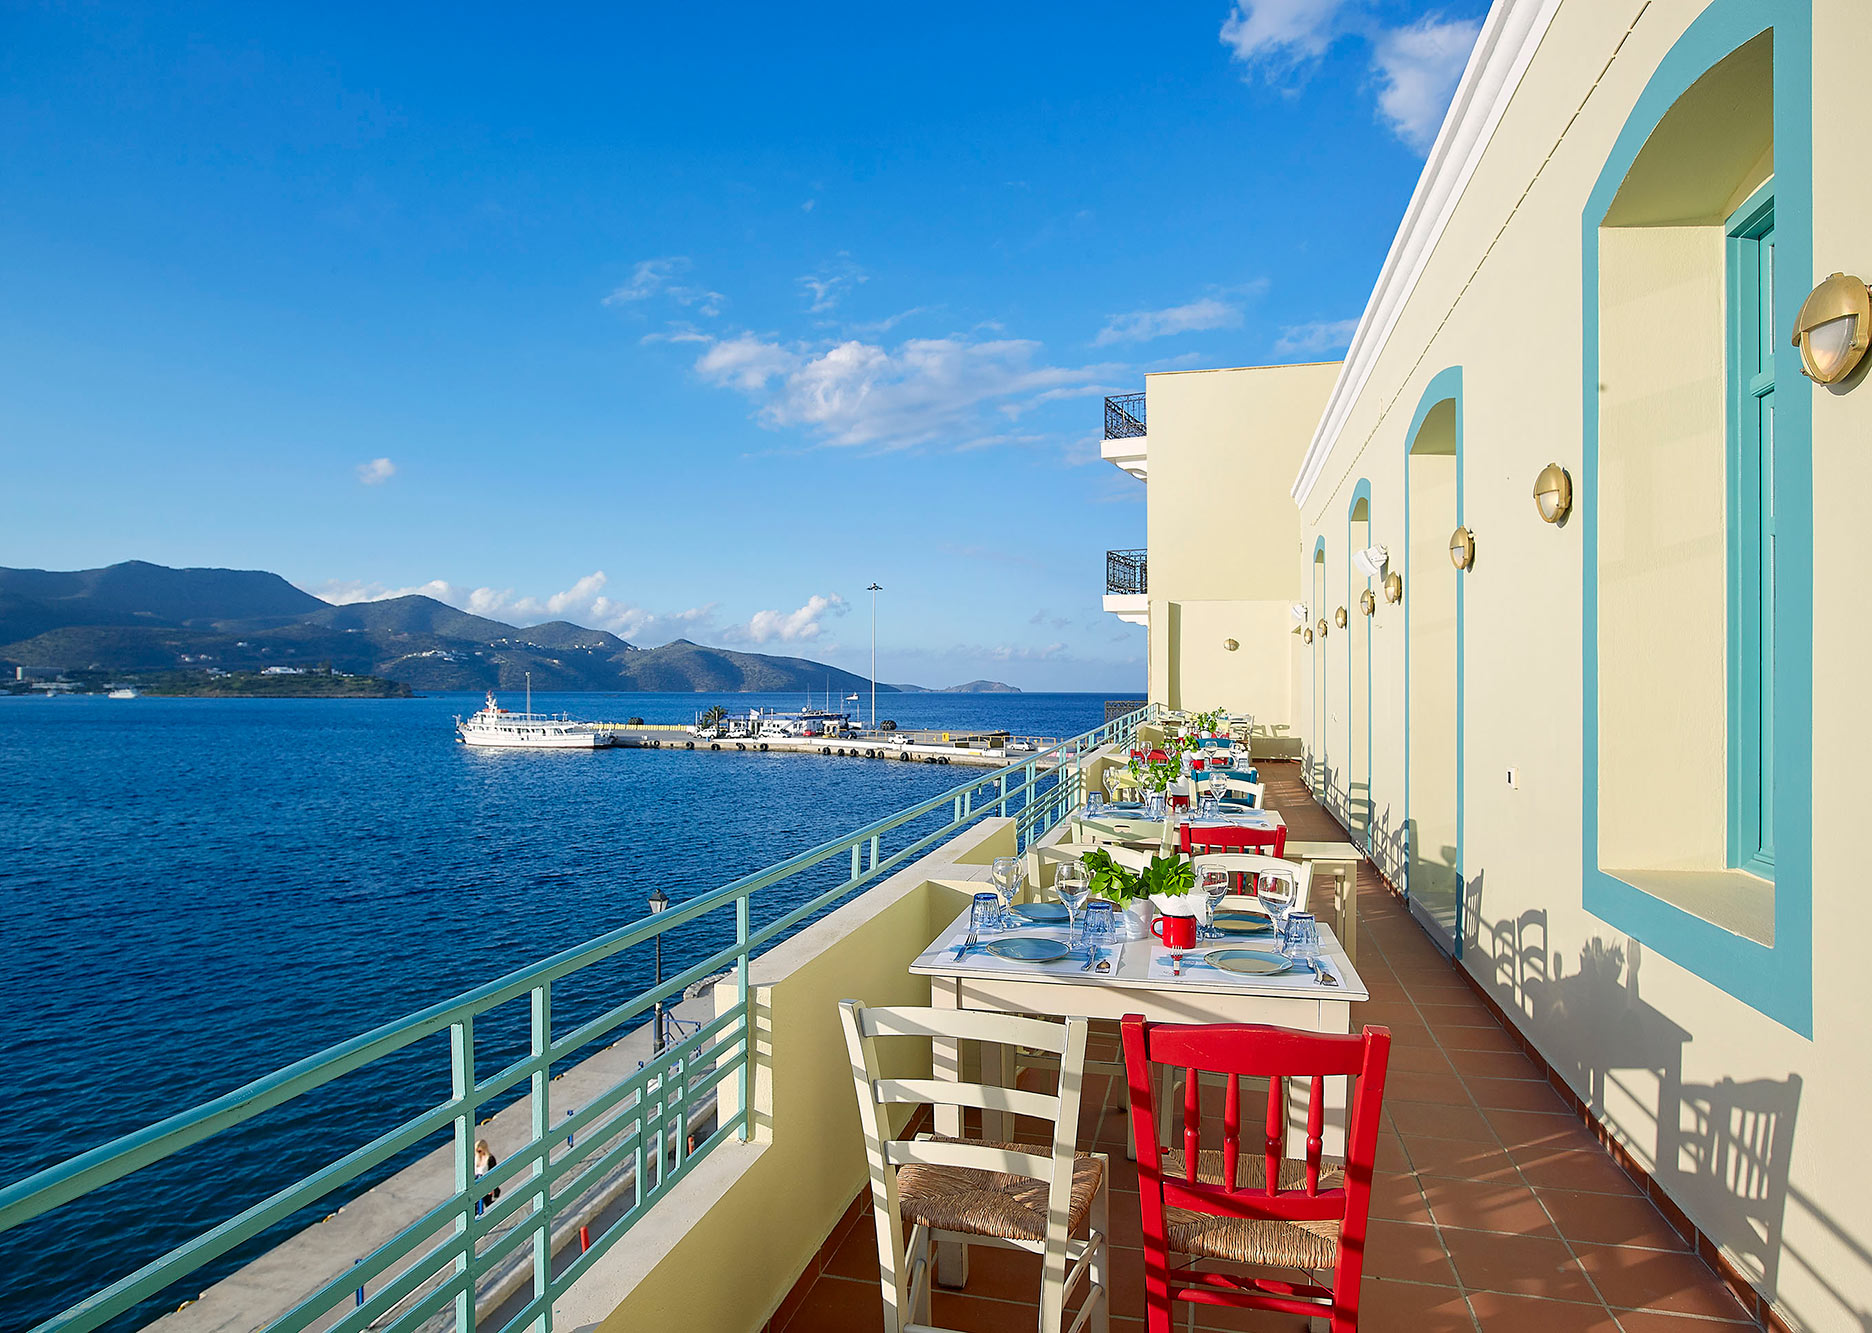 agios nikolaos big and beautiful singles Detached apartment block in beautiful location  a modern apartment block situated about 7km south of the beautiful town of agios nikolaos  agios nikolaos is.